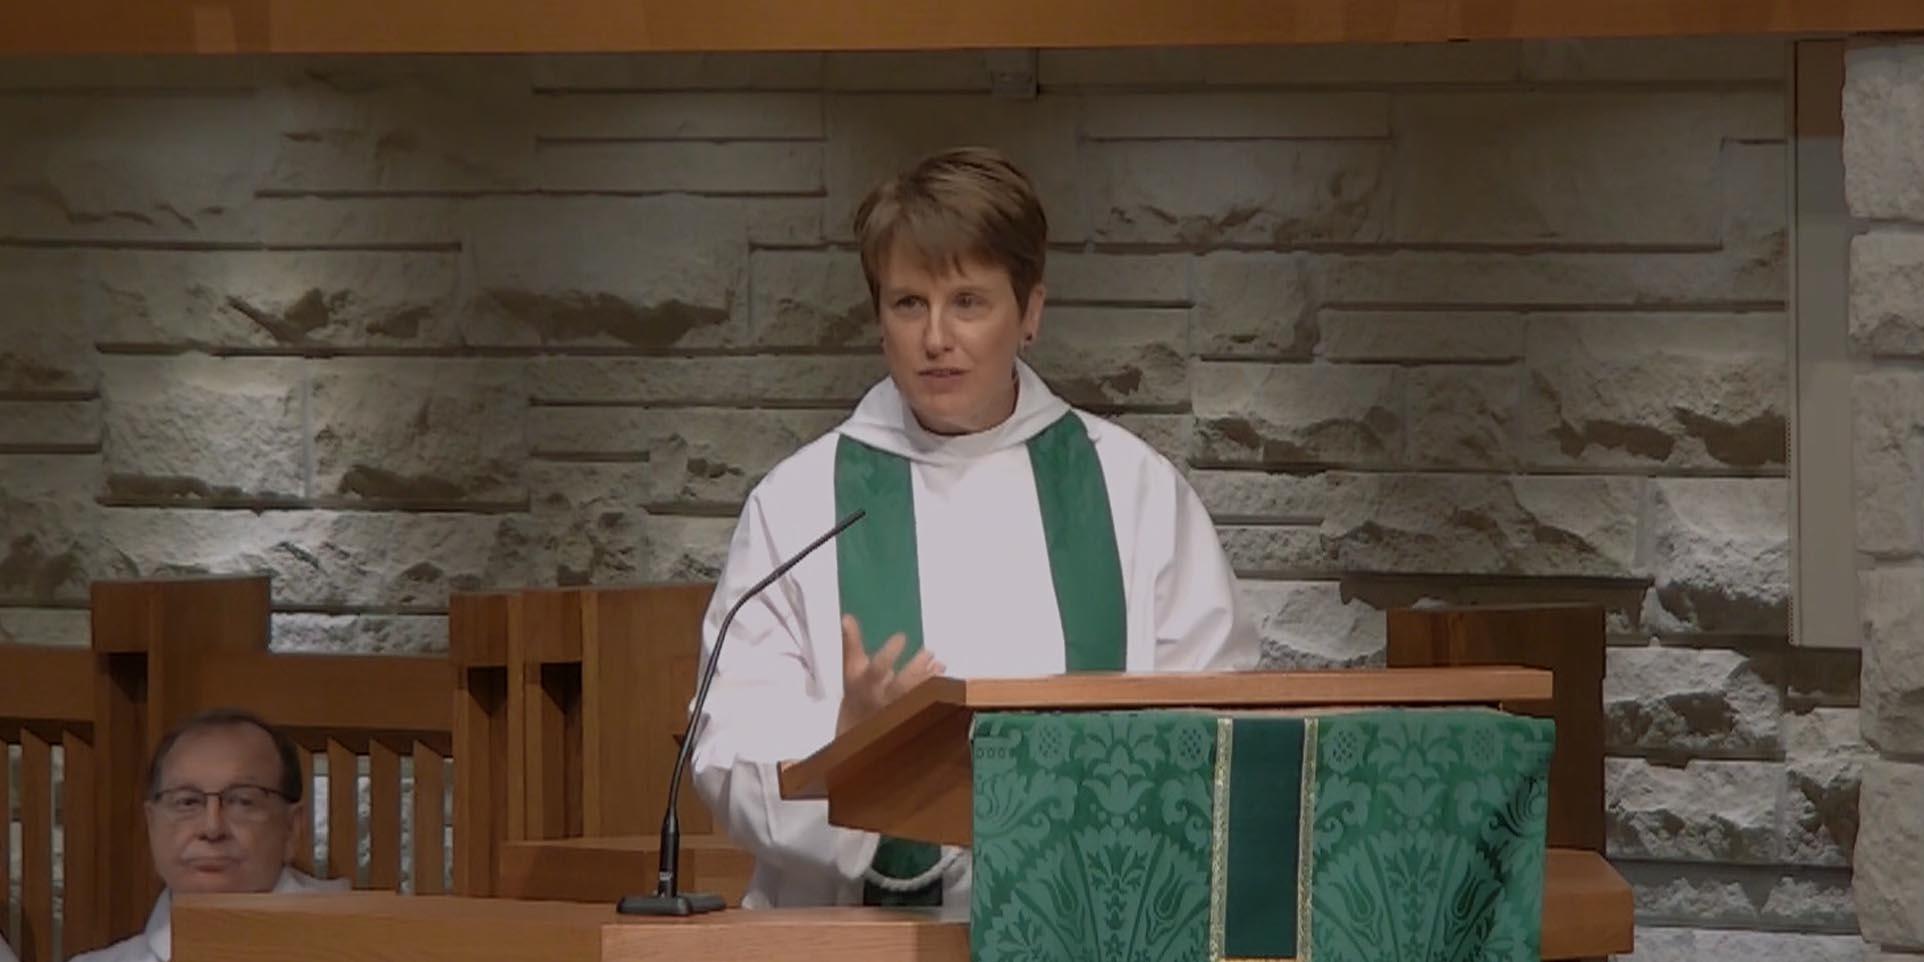 Come Reason Together - Sermon by the Rev. Louise Samuelson